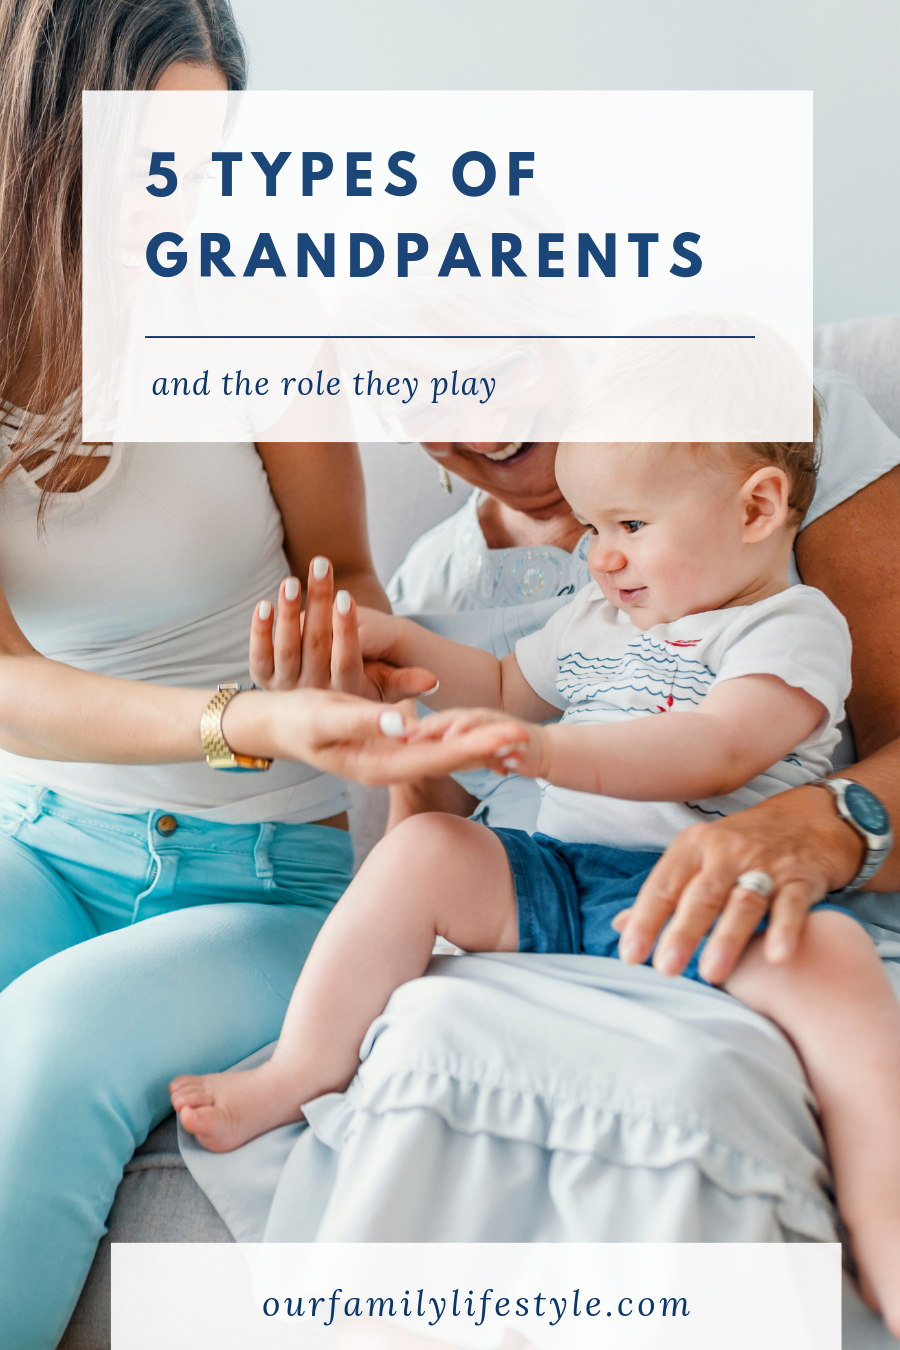 5 Types of Grandparents and Role They Play